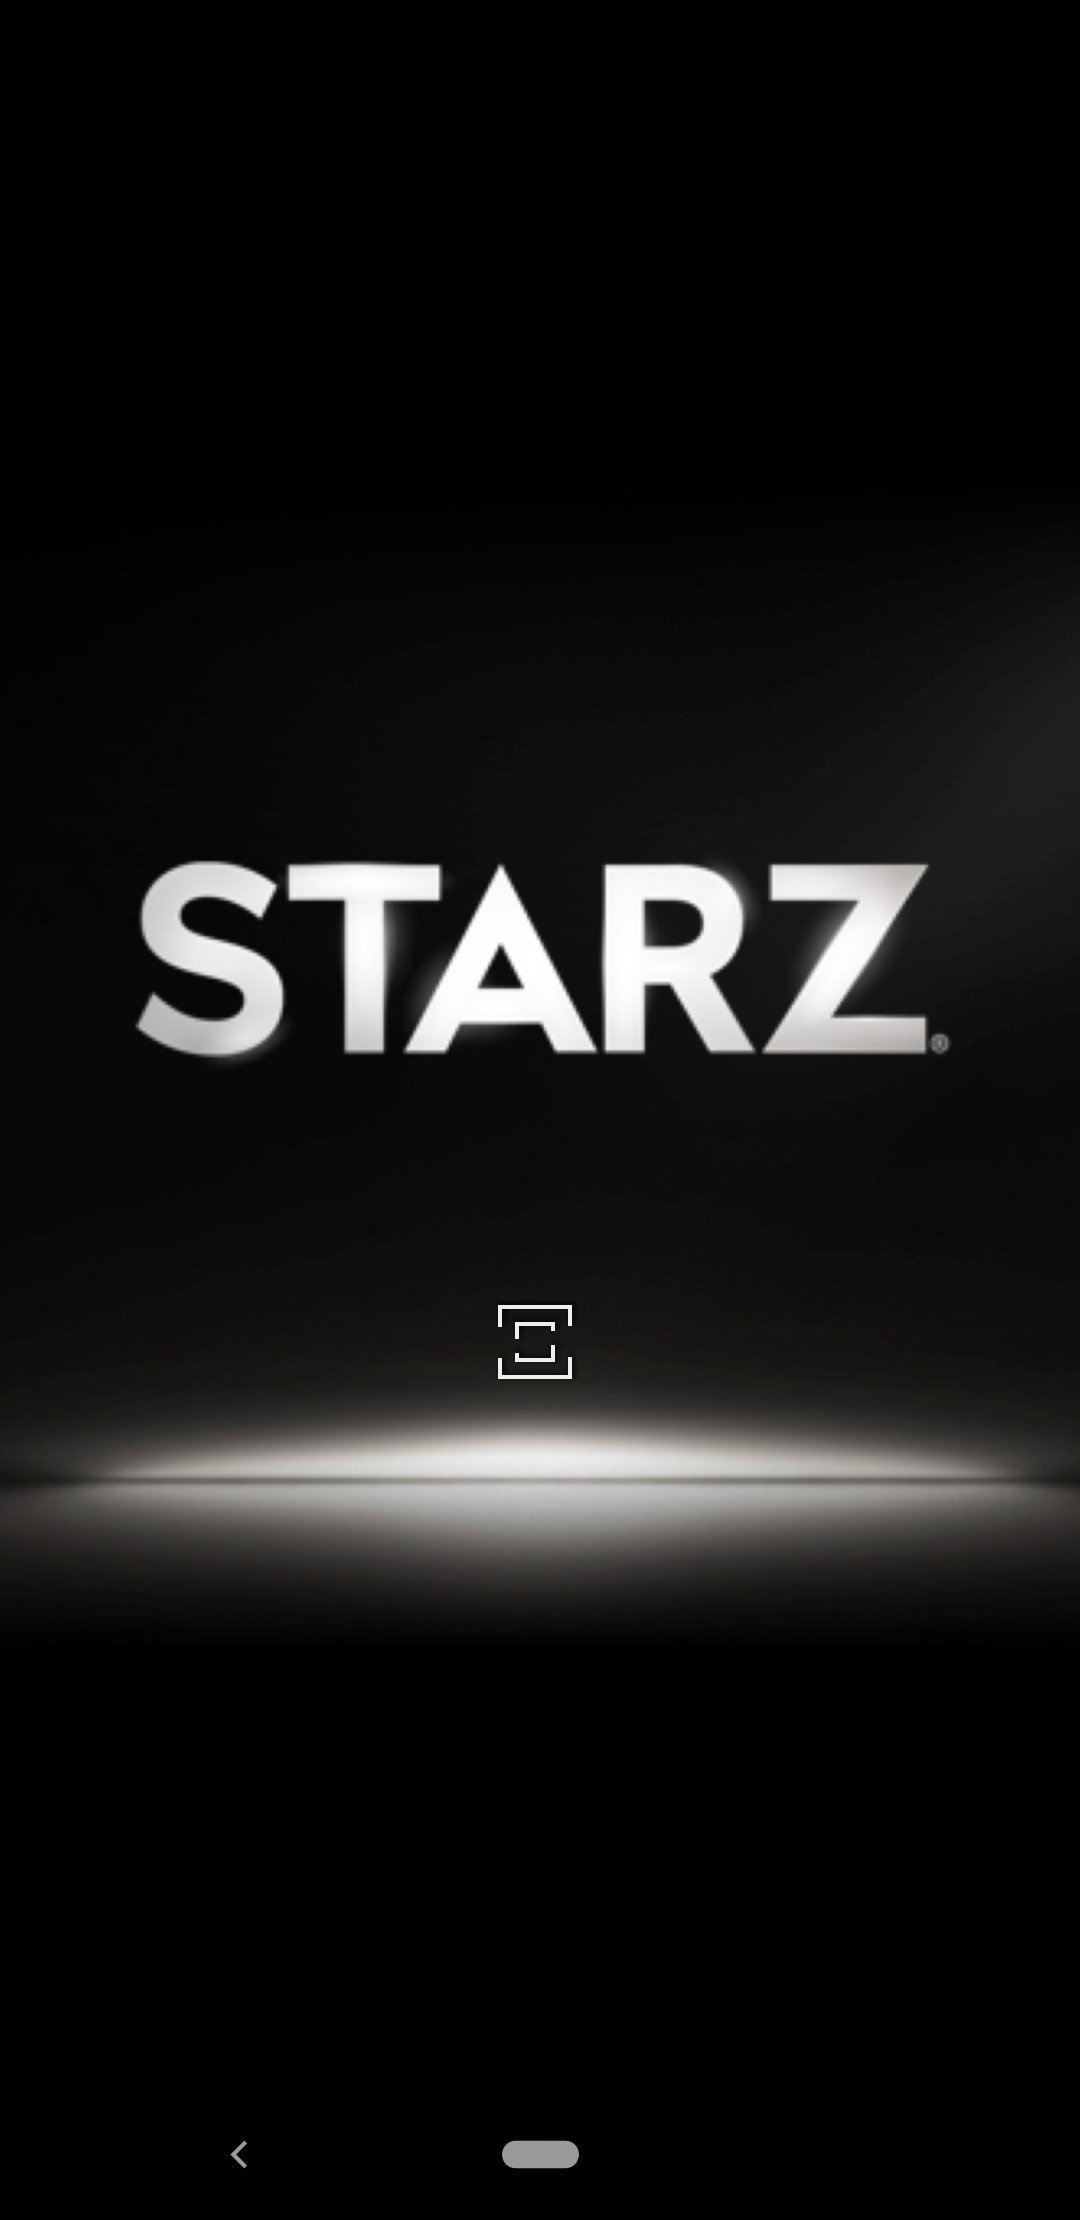 STARZ Android image 5